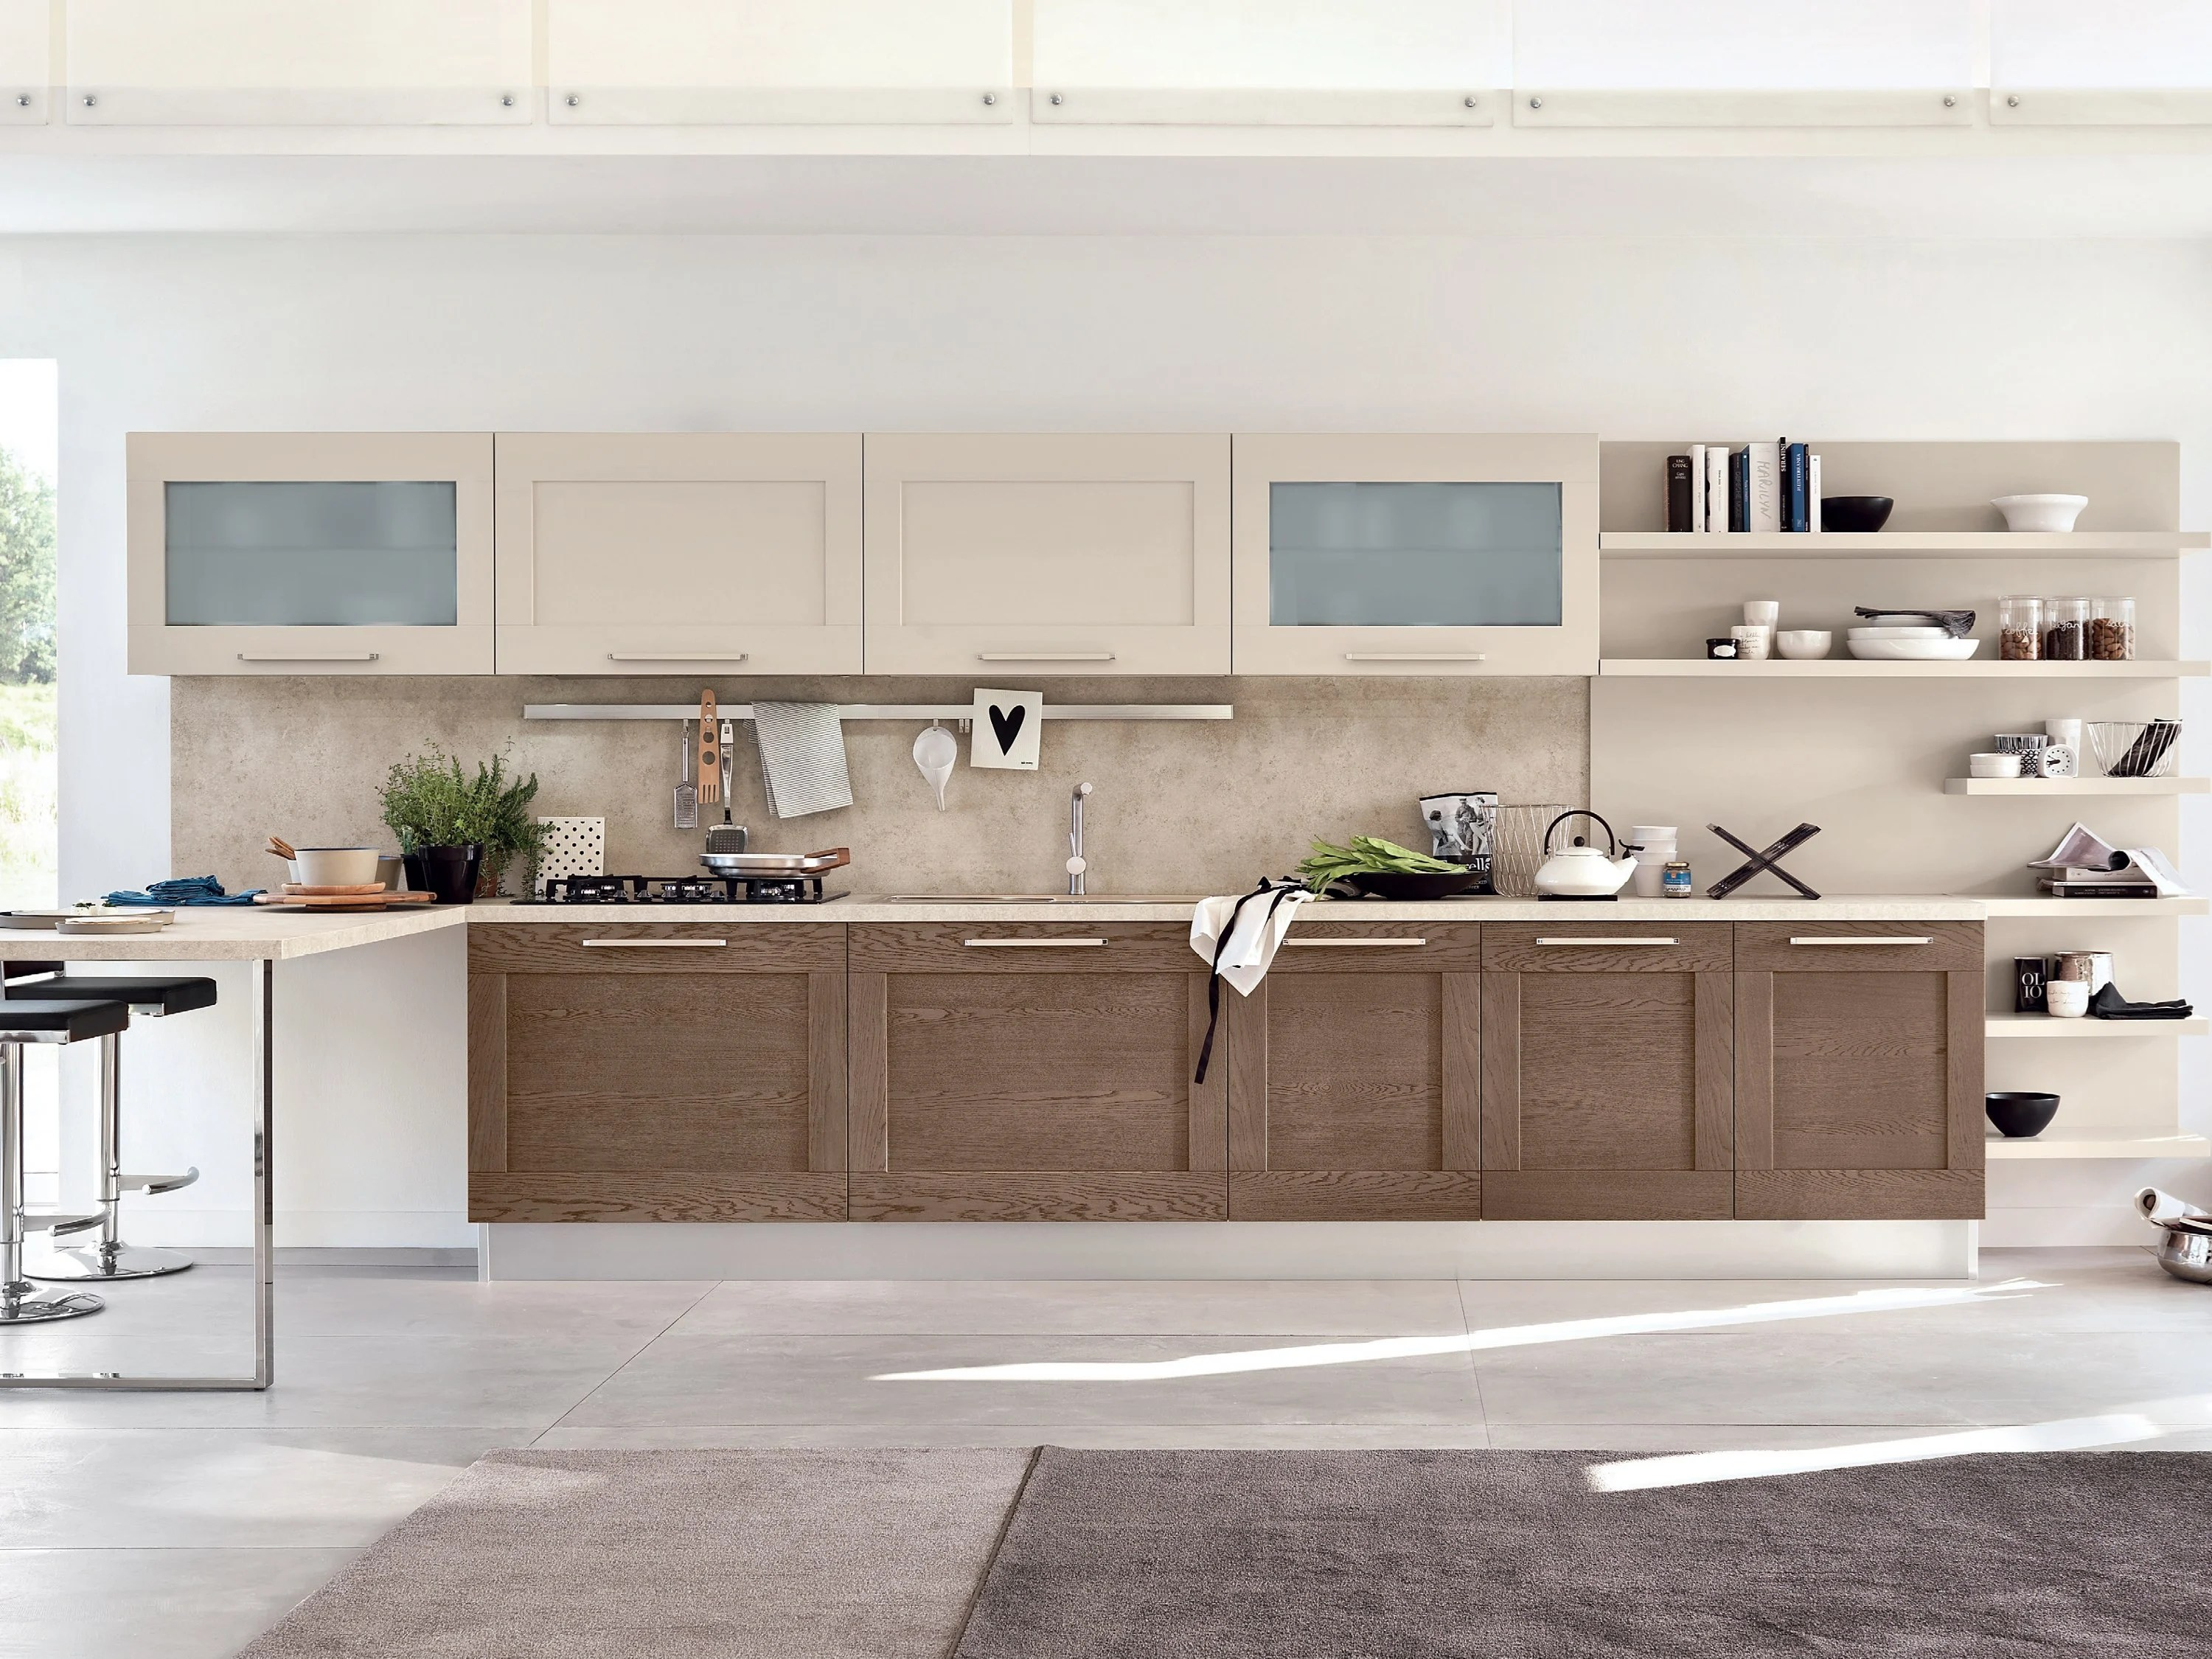 GALLERY Linear kitchen by Cucine Lube